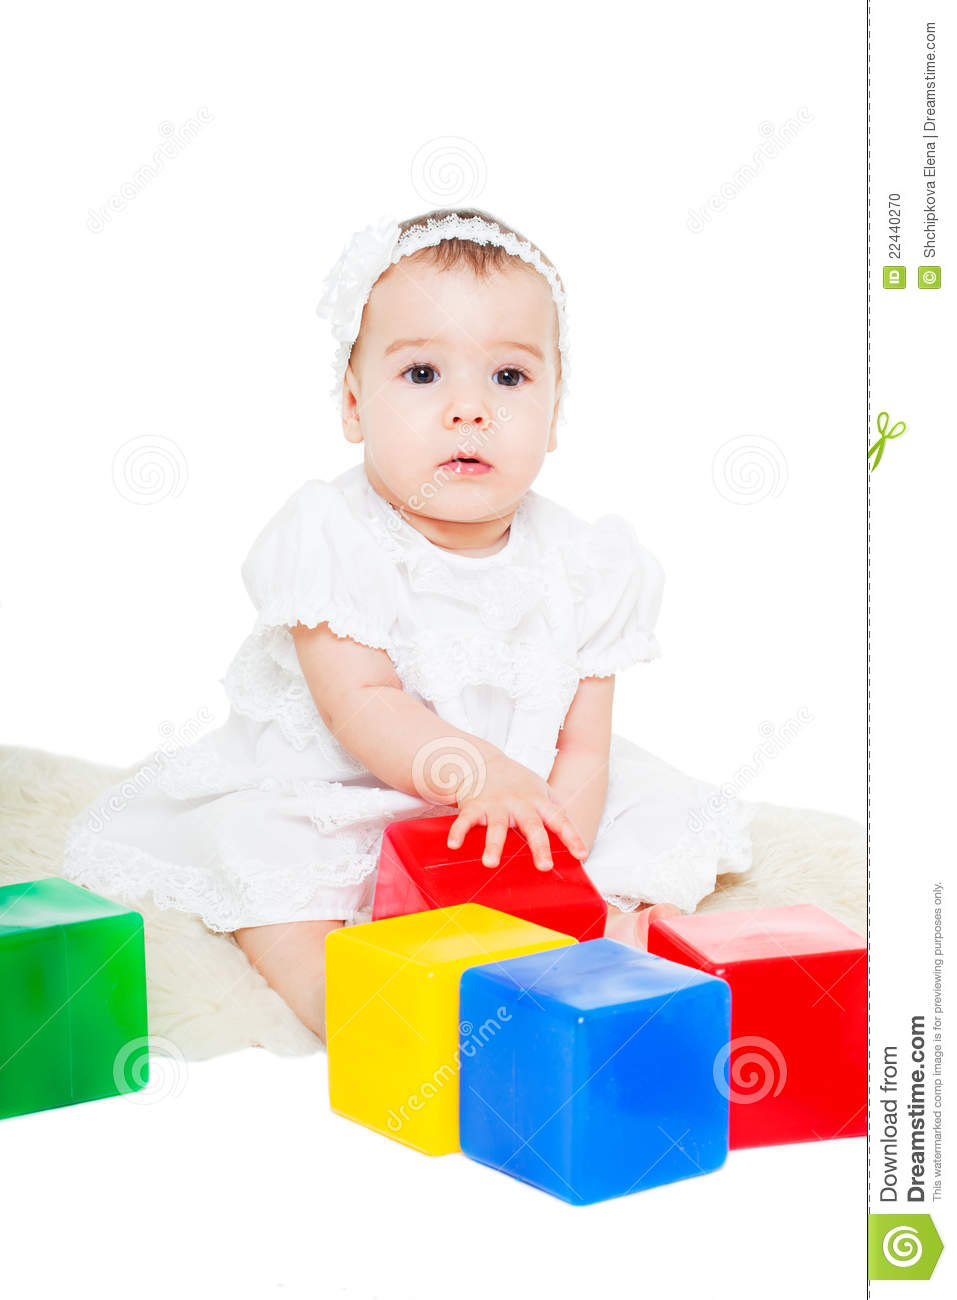 Baby Girl Plays With Toy Blocks Stock Photo - Image: 22440270